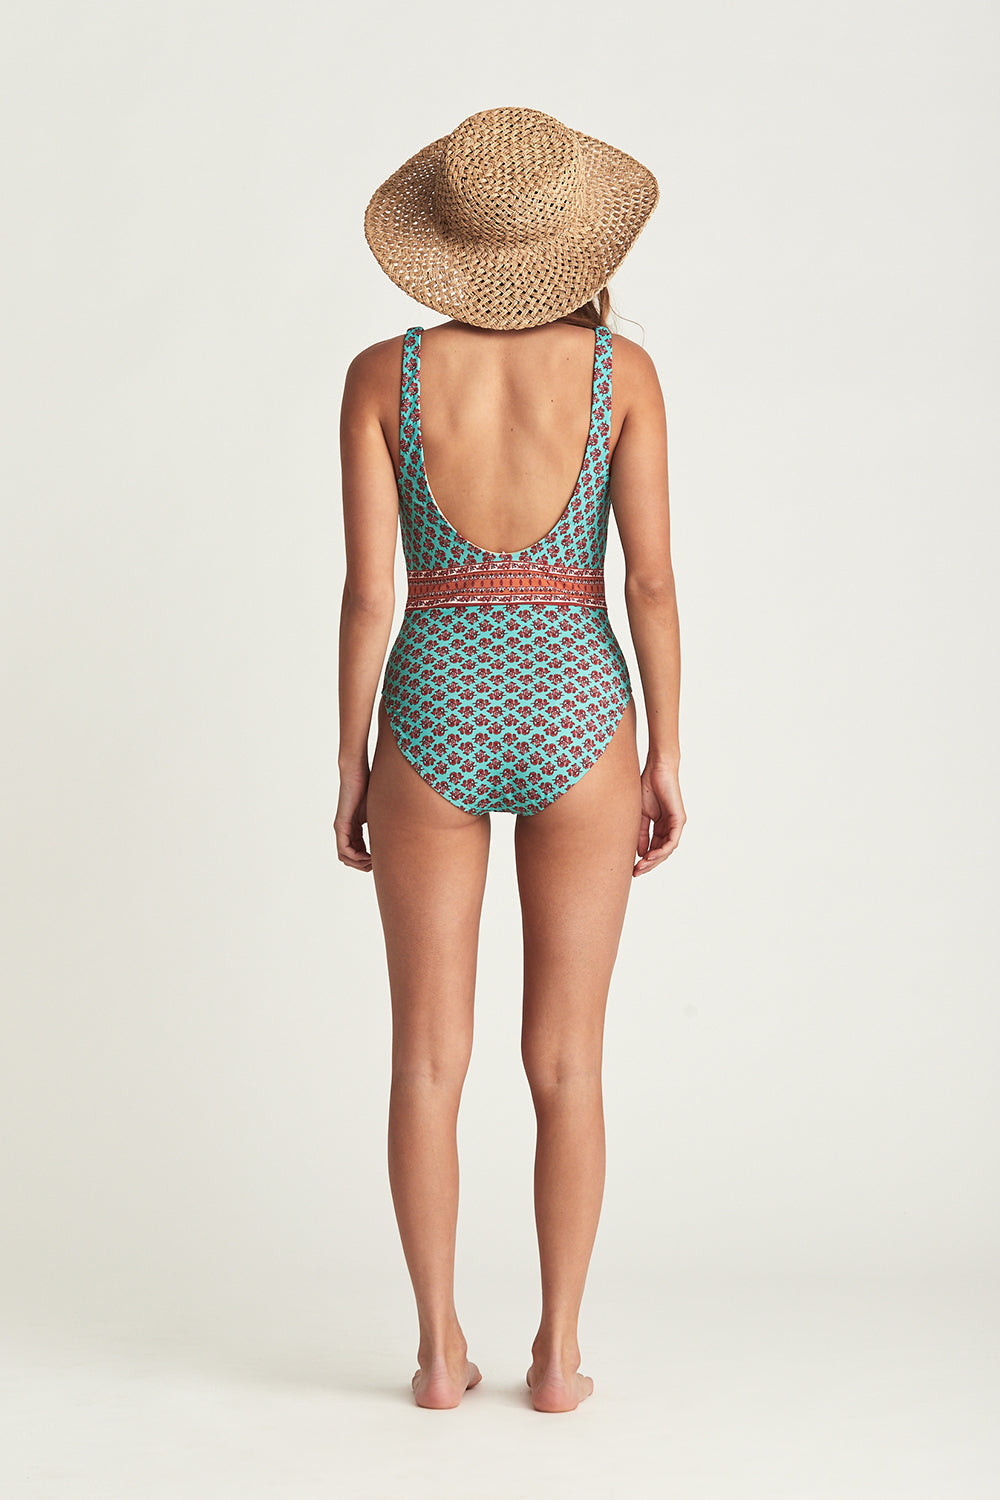 Serafina One Piece in Kingfisher